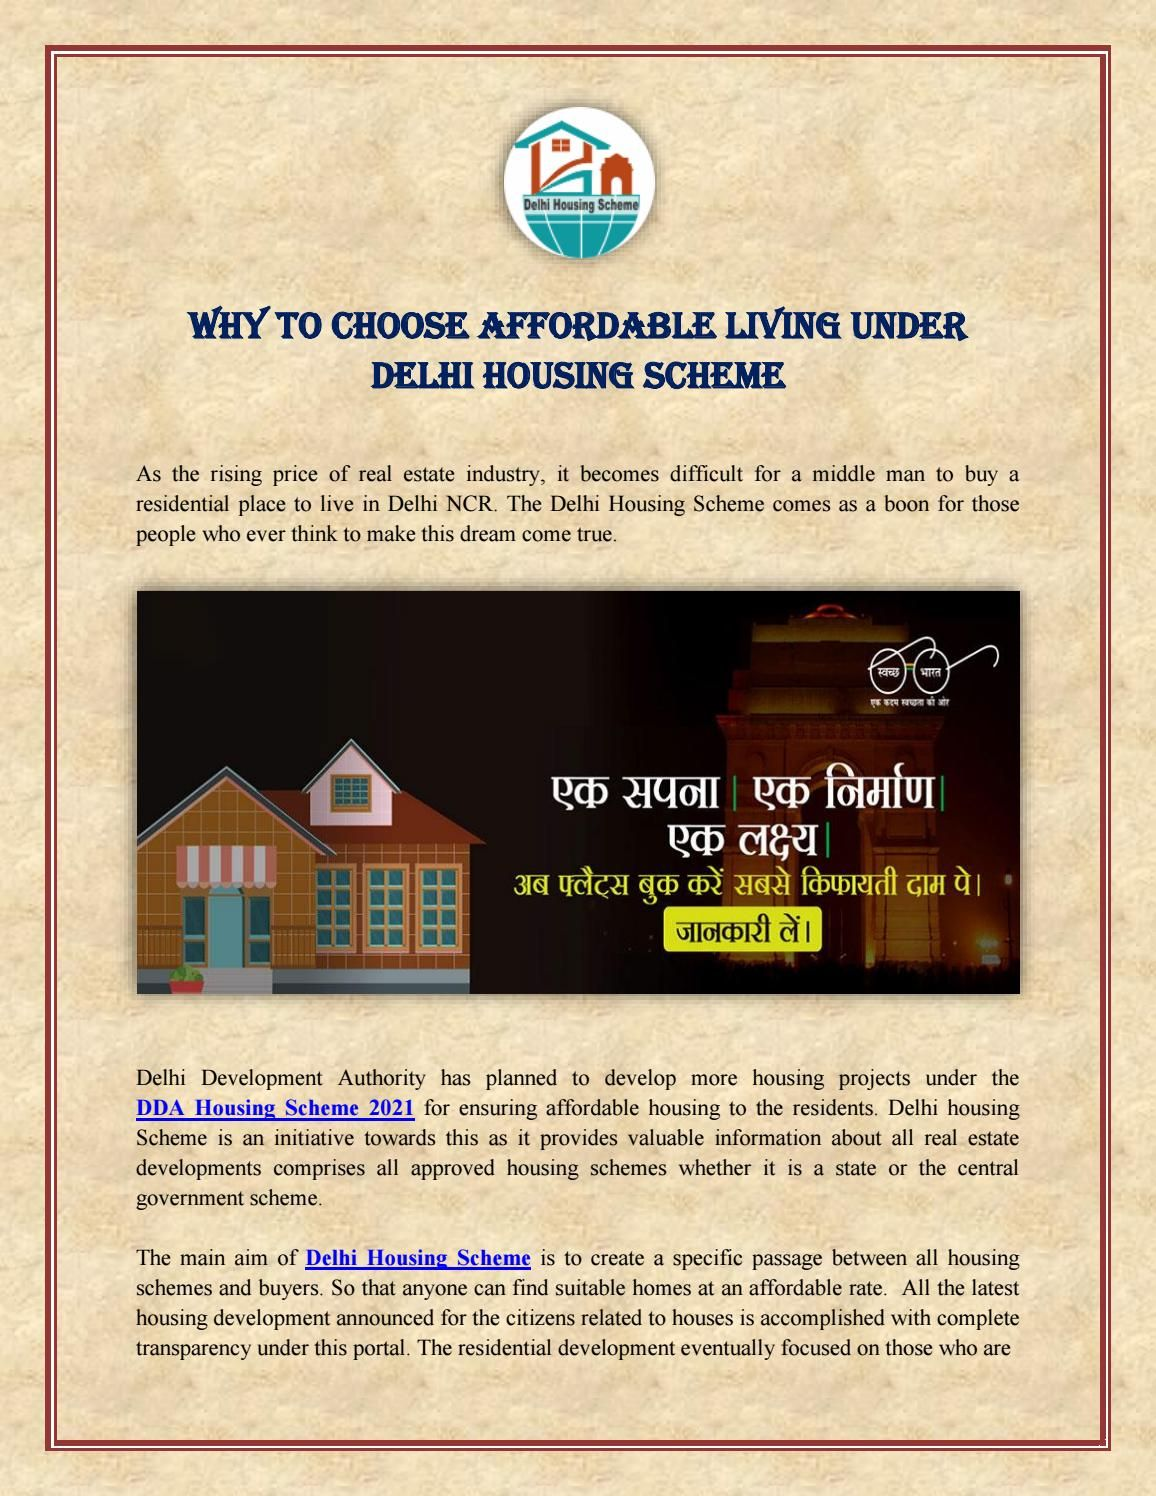 Why To Choose Affordable Living Under Delhi Housing Scheme Schemes Affordable Affordable Housing